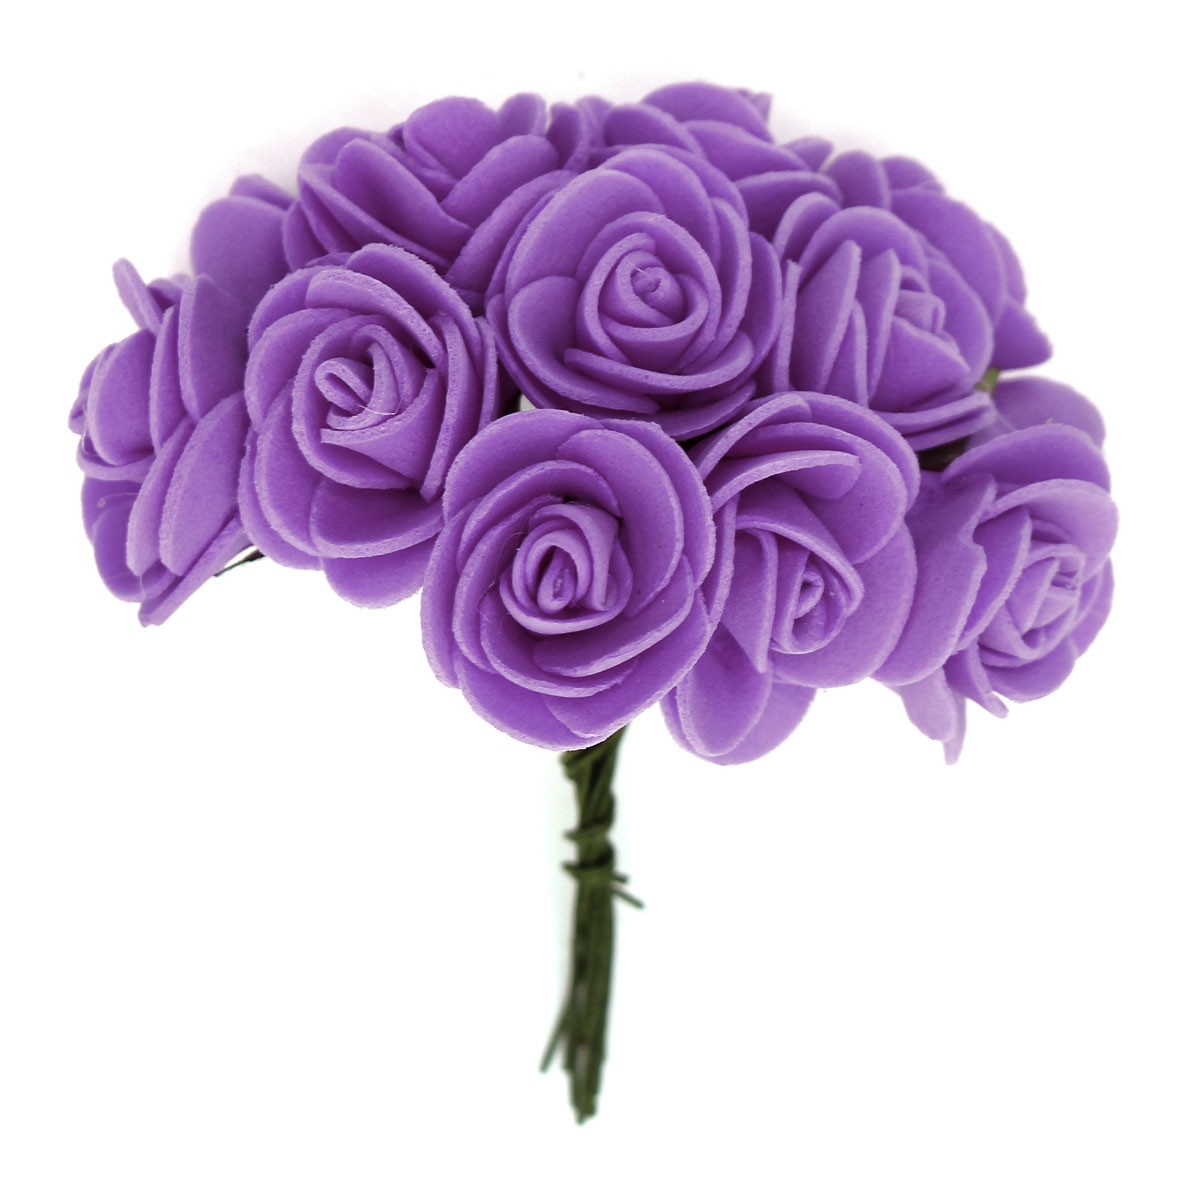 purple artificial flowers in vase of vases 144 pcs artificial flower foam rose wedding festival home intended for 144 pcs artificial flower foam rose wedding festival home party indoor party deco color purple